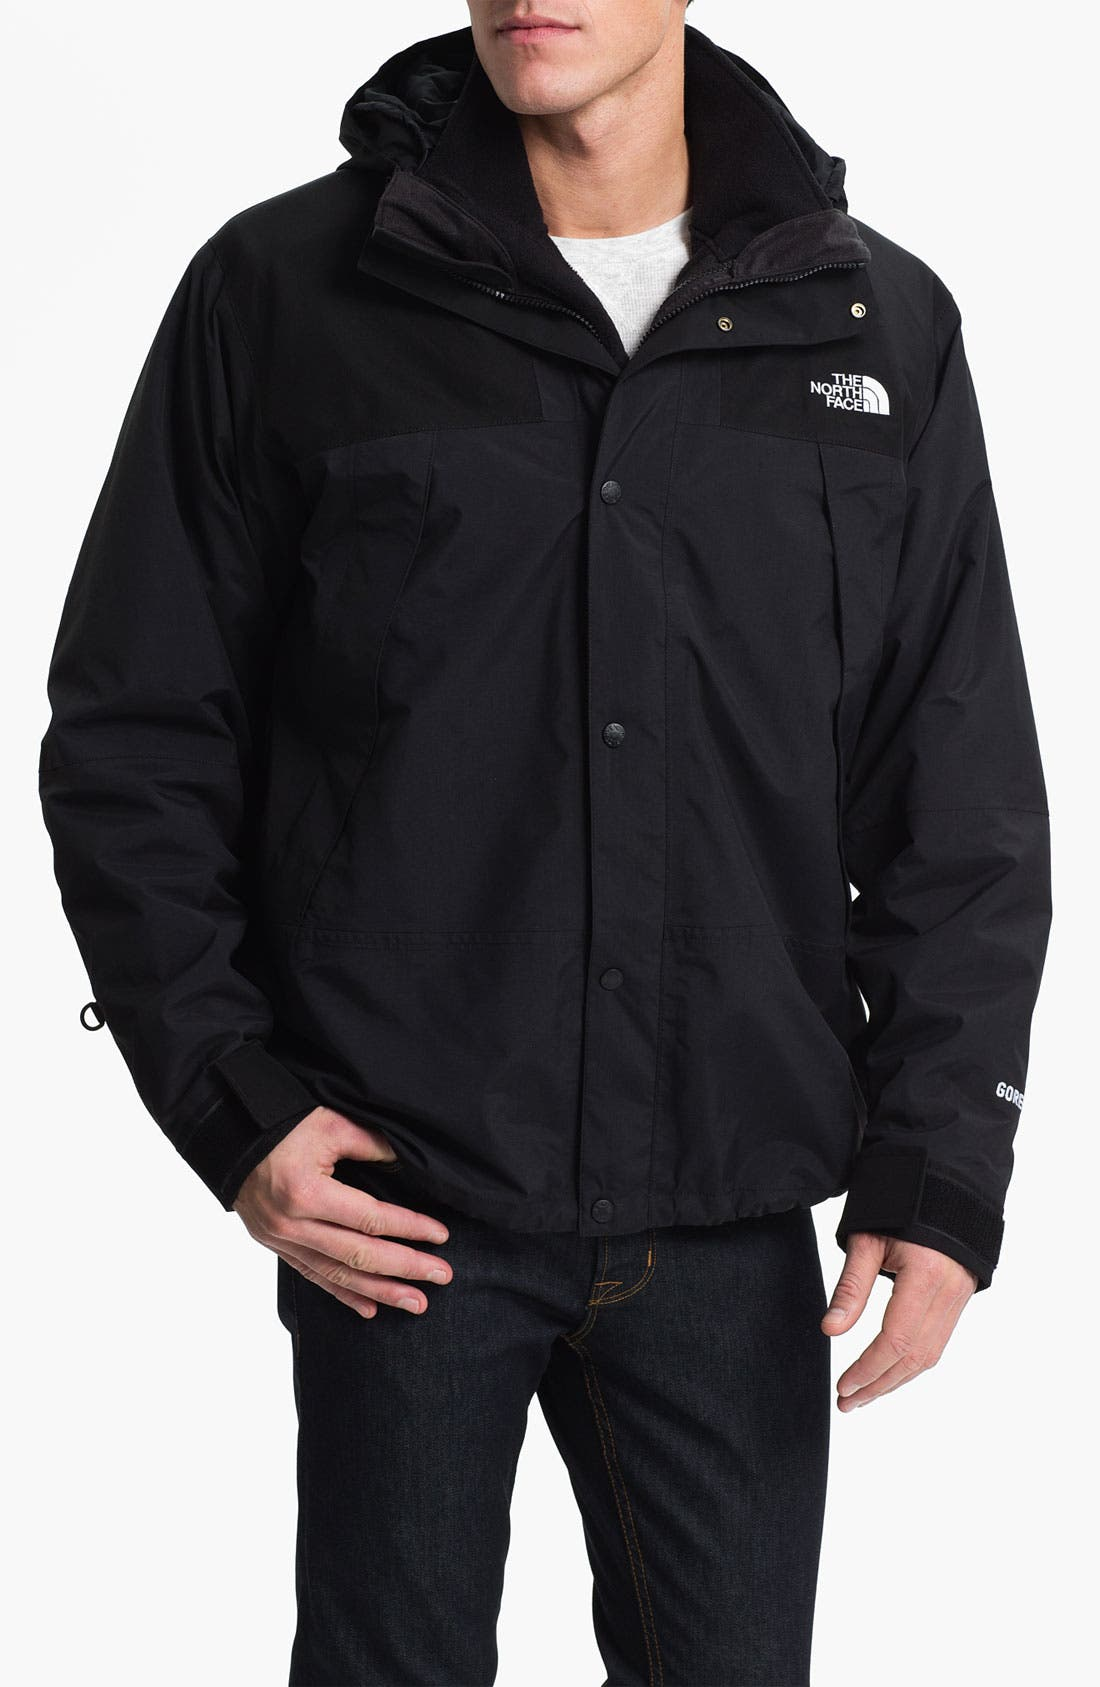 Main Image - The North Face 'Denali' TriClimate® 3-in-1 Jacket